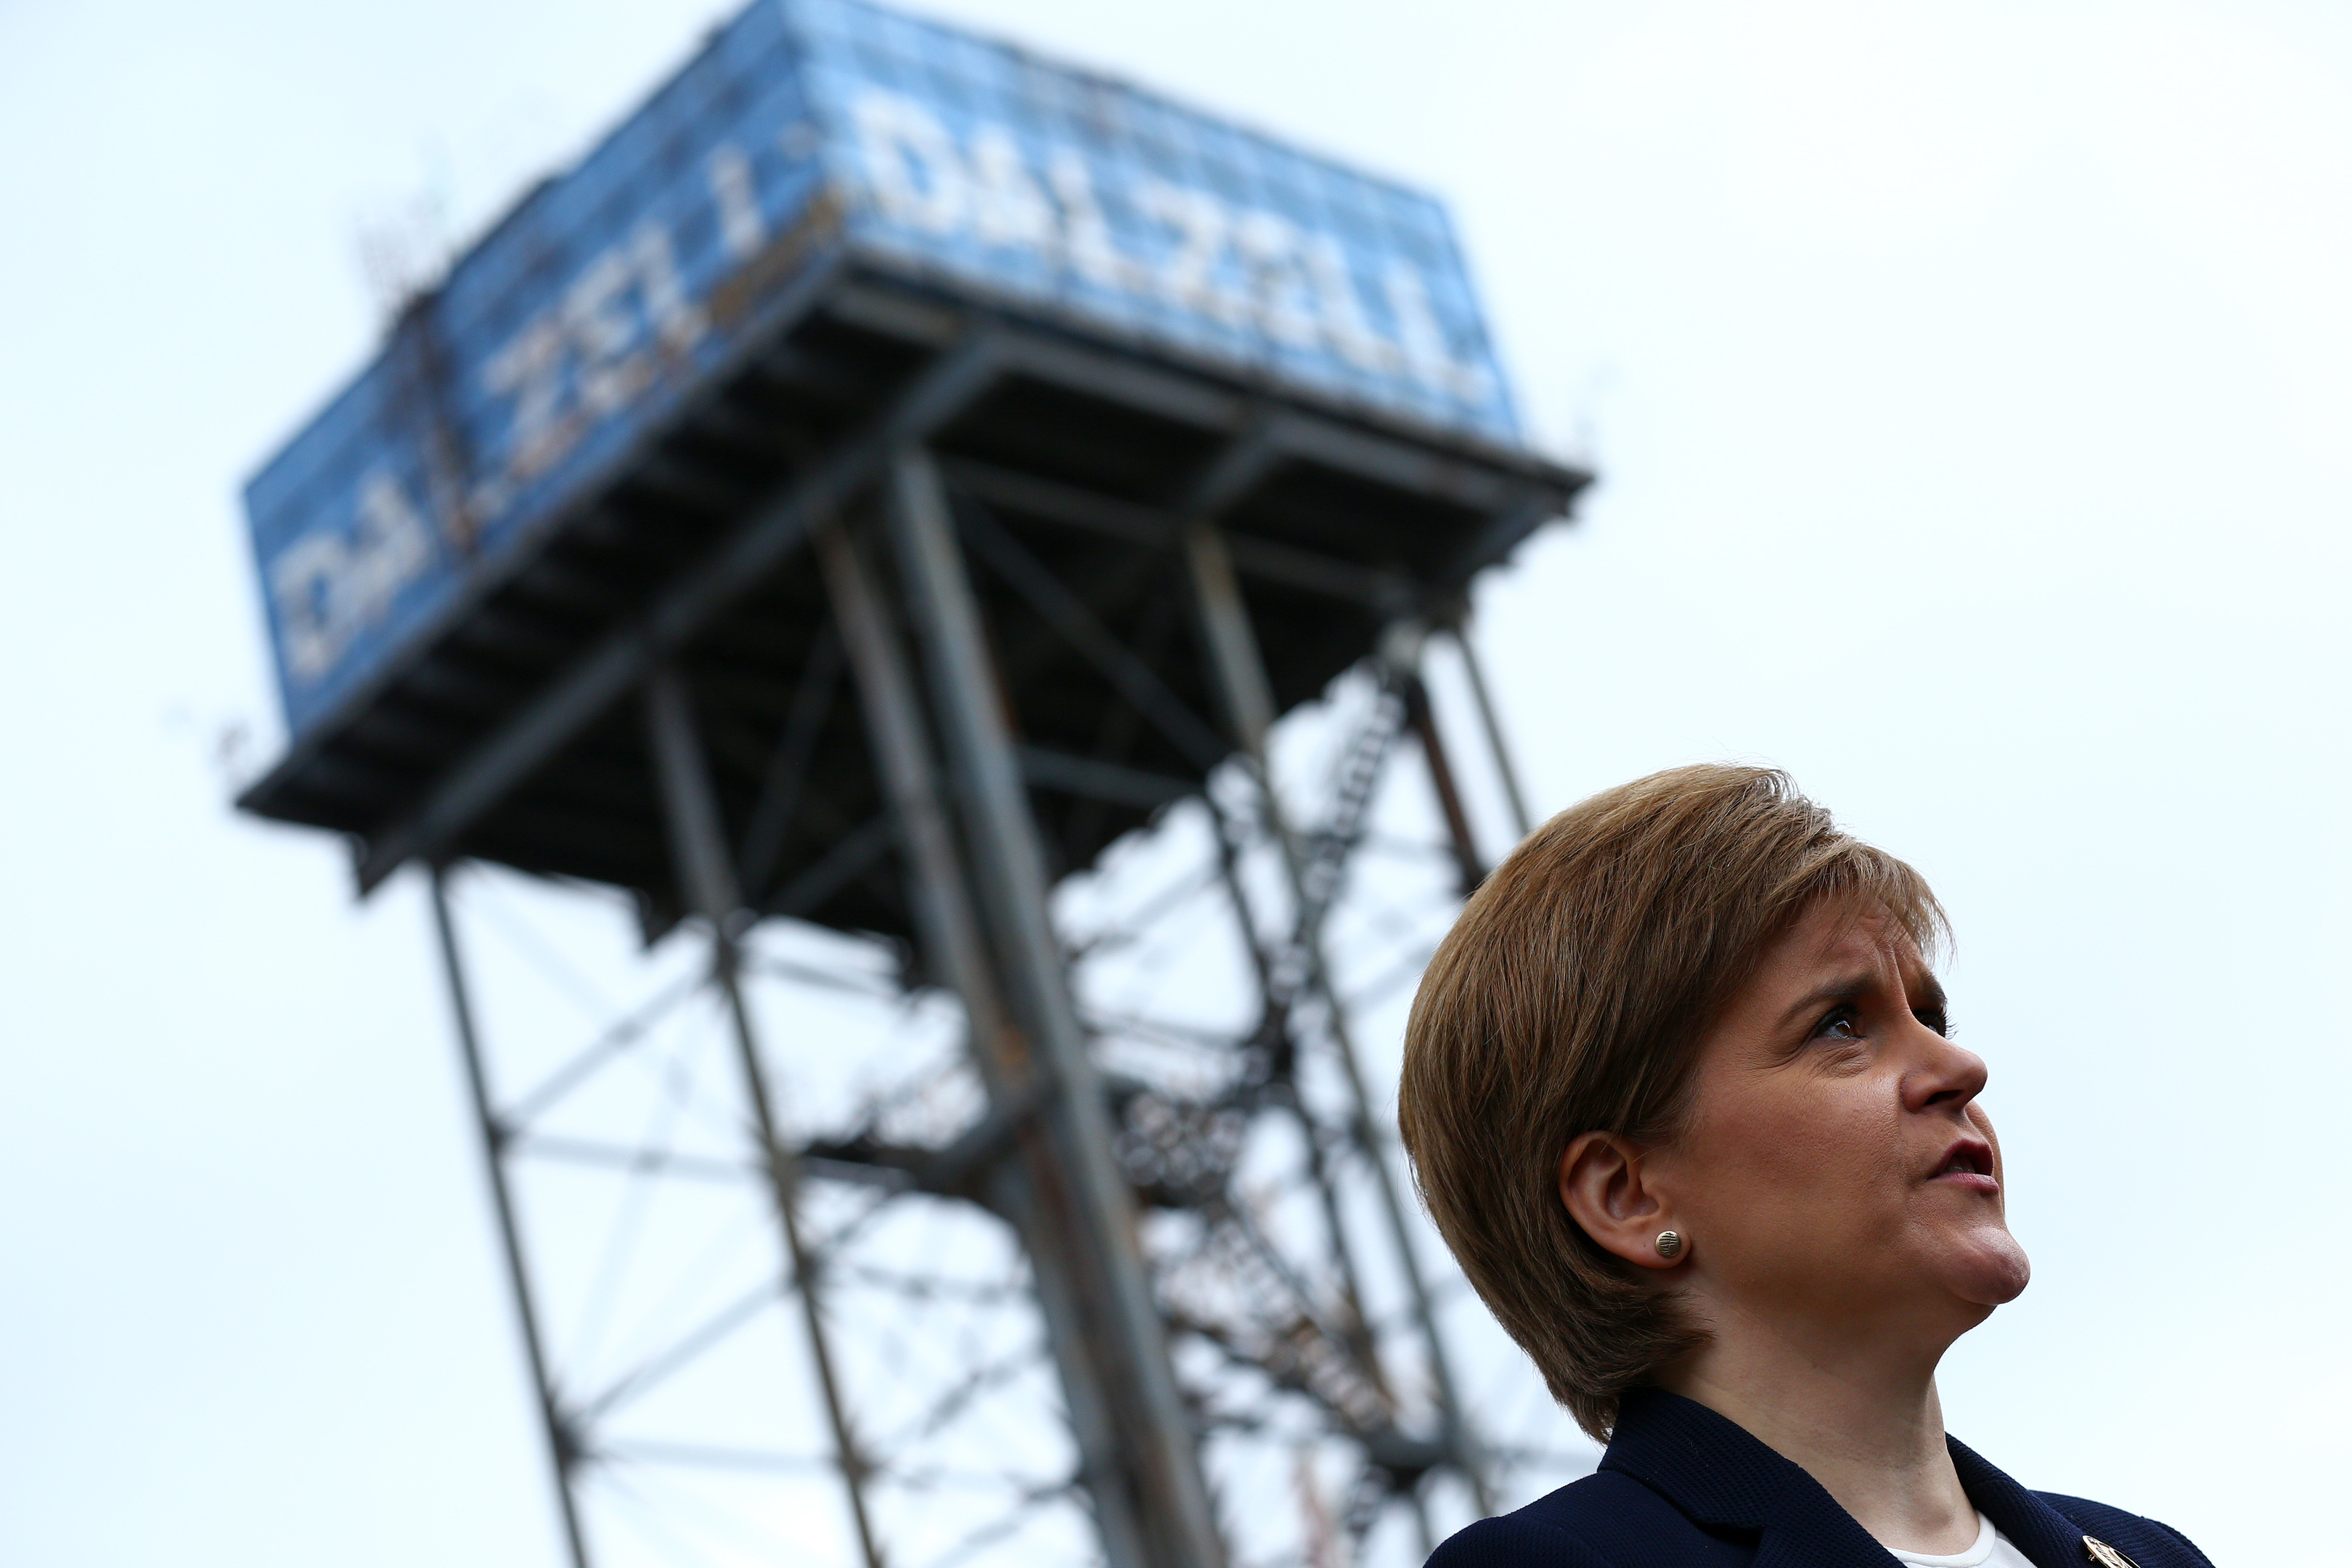 Nicola Sturgeon (Mark Runnacles/Getty Images)